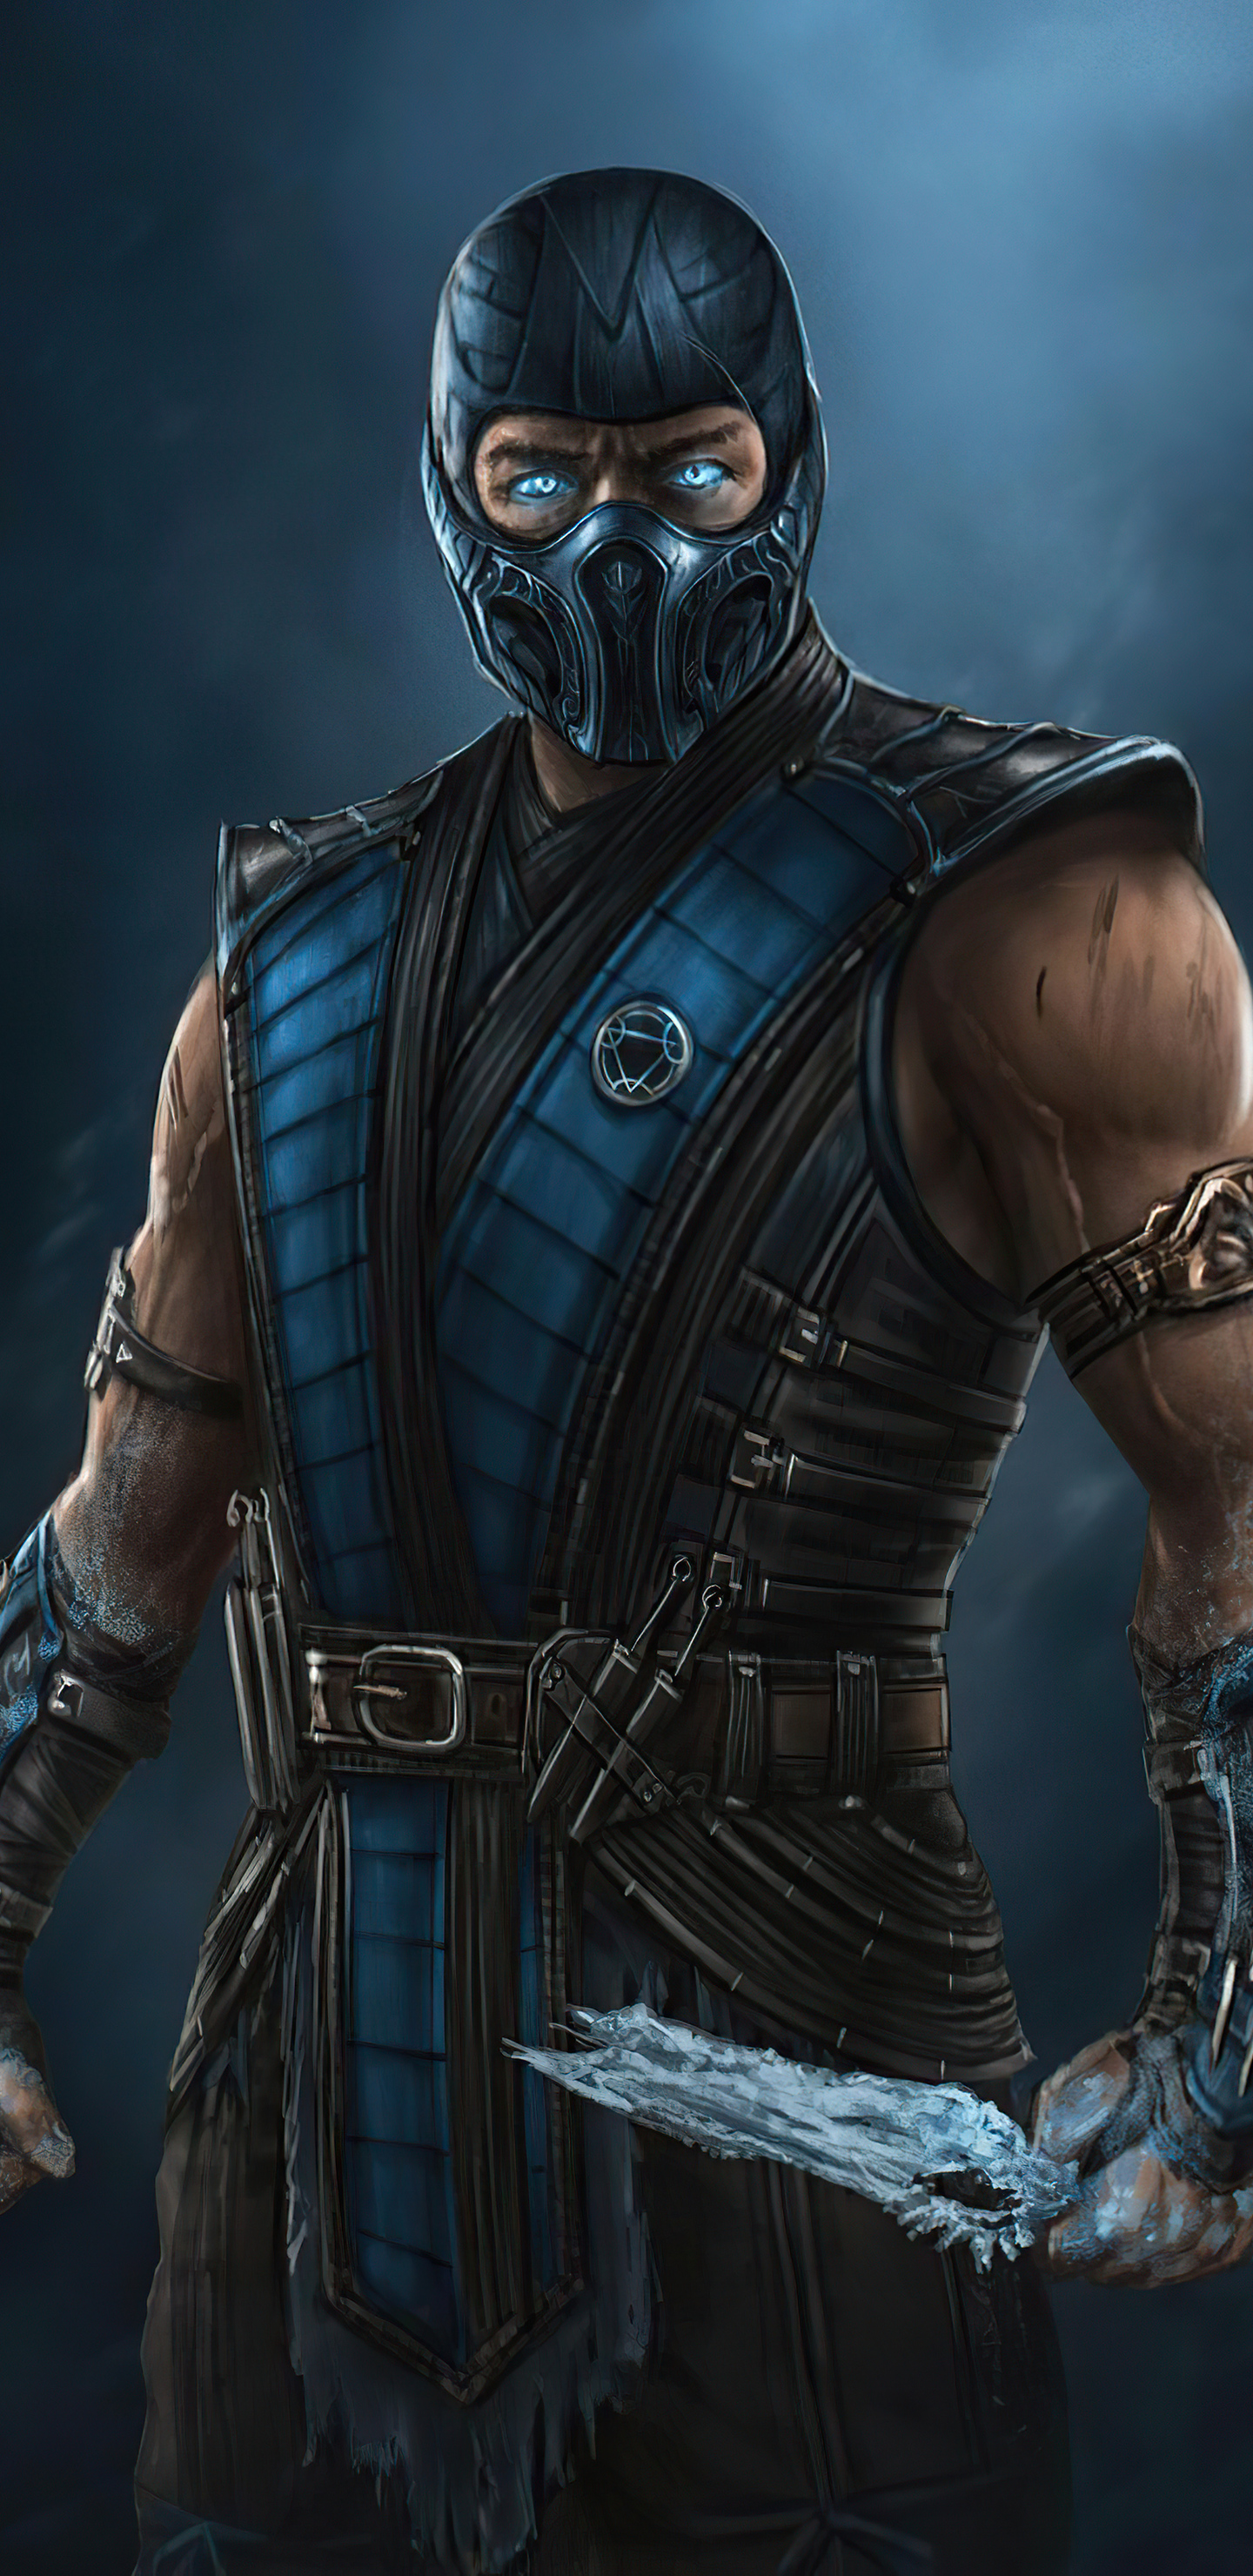 sub-zero-from-mortalkombat-movie-4k-t1.jpg